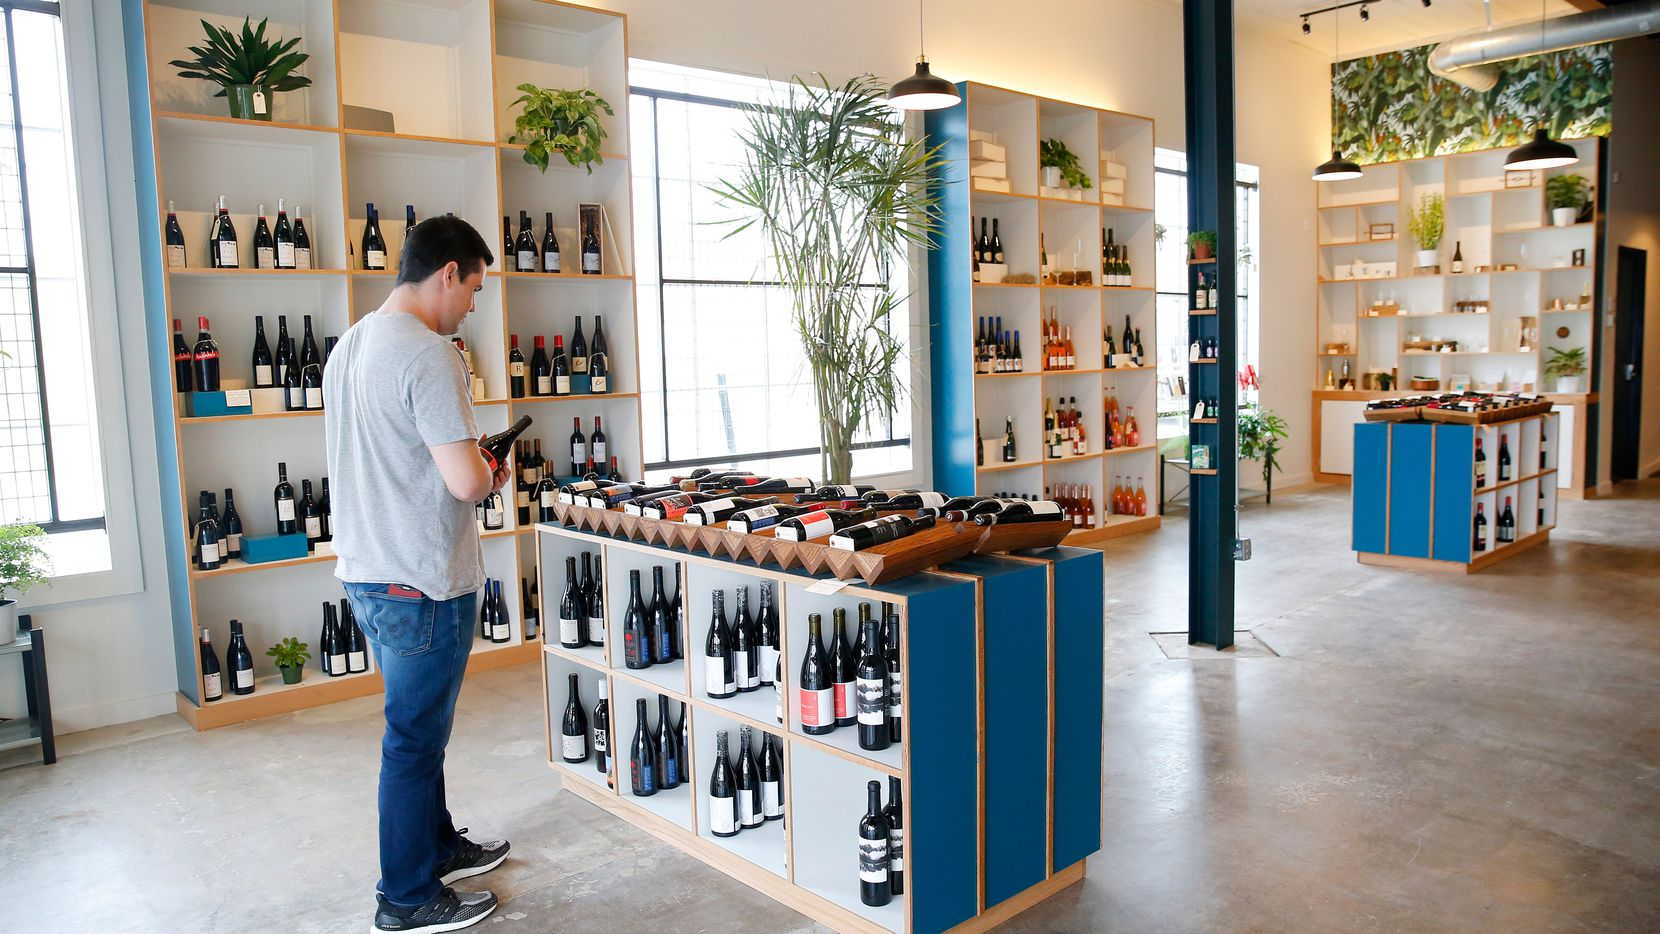 Bar and Garden, a new shop on Ross Avenue, specializes in natural wines. (Tom Fox/The Dallas Morning News)